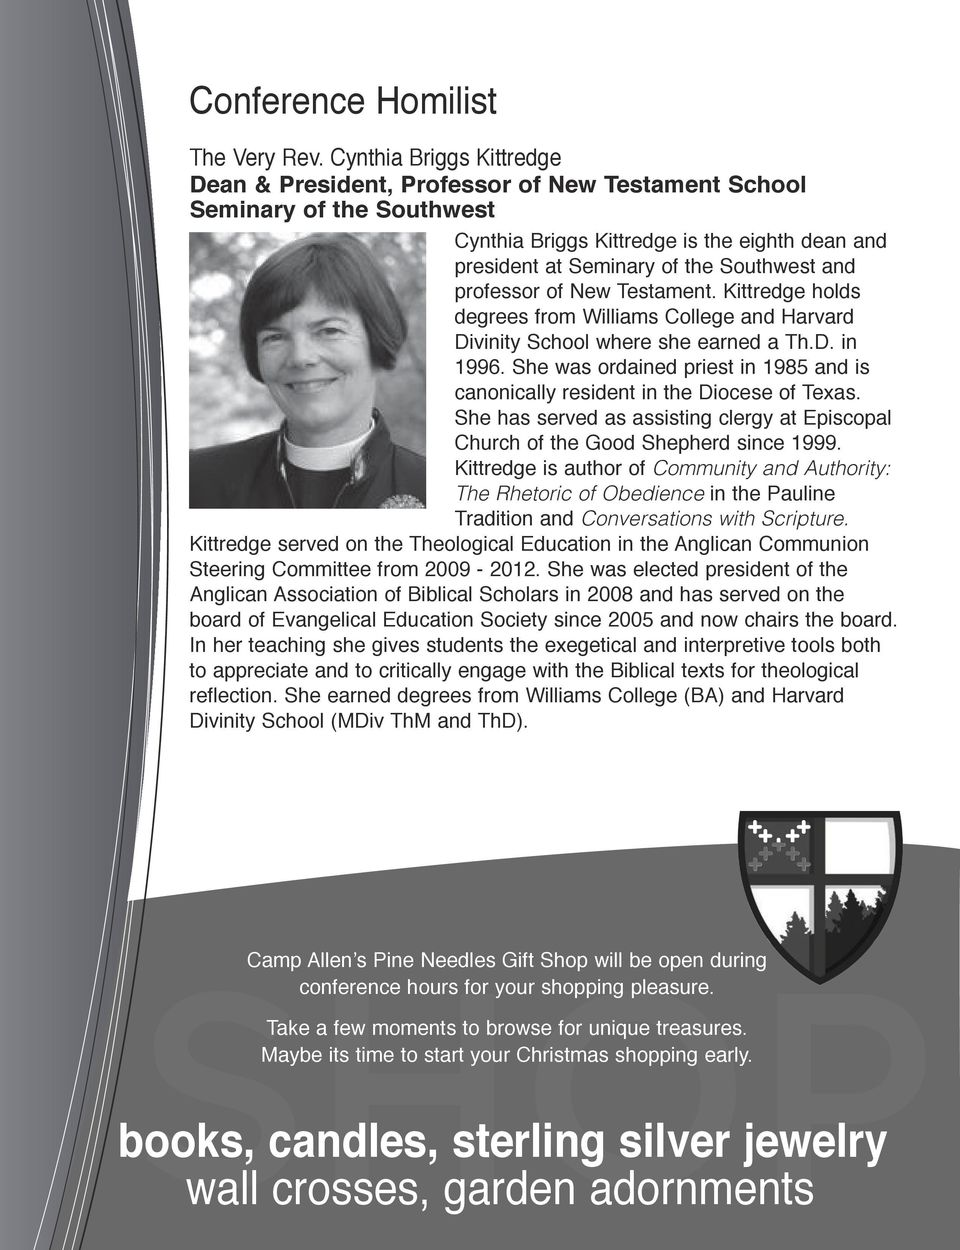 professor of New Testament. Kittredge holds degrees from Williams College and Harvard Divinity School where she earned a Th.D. in 1996.